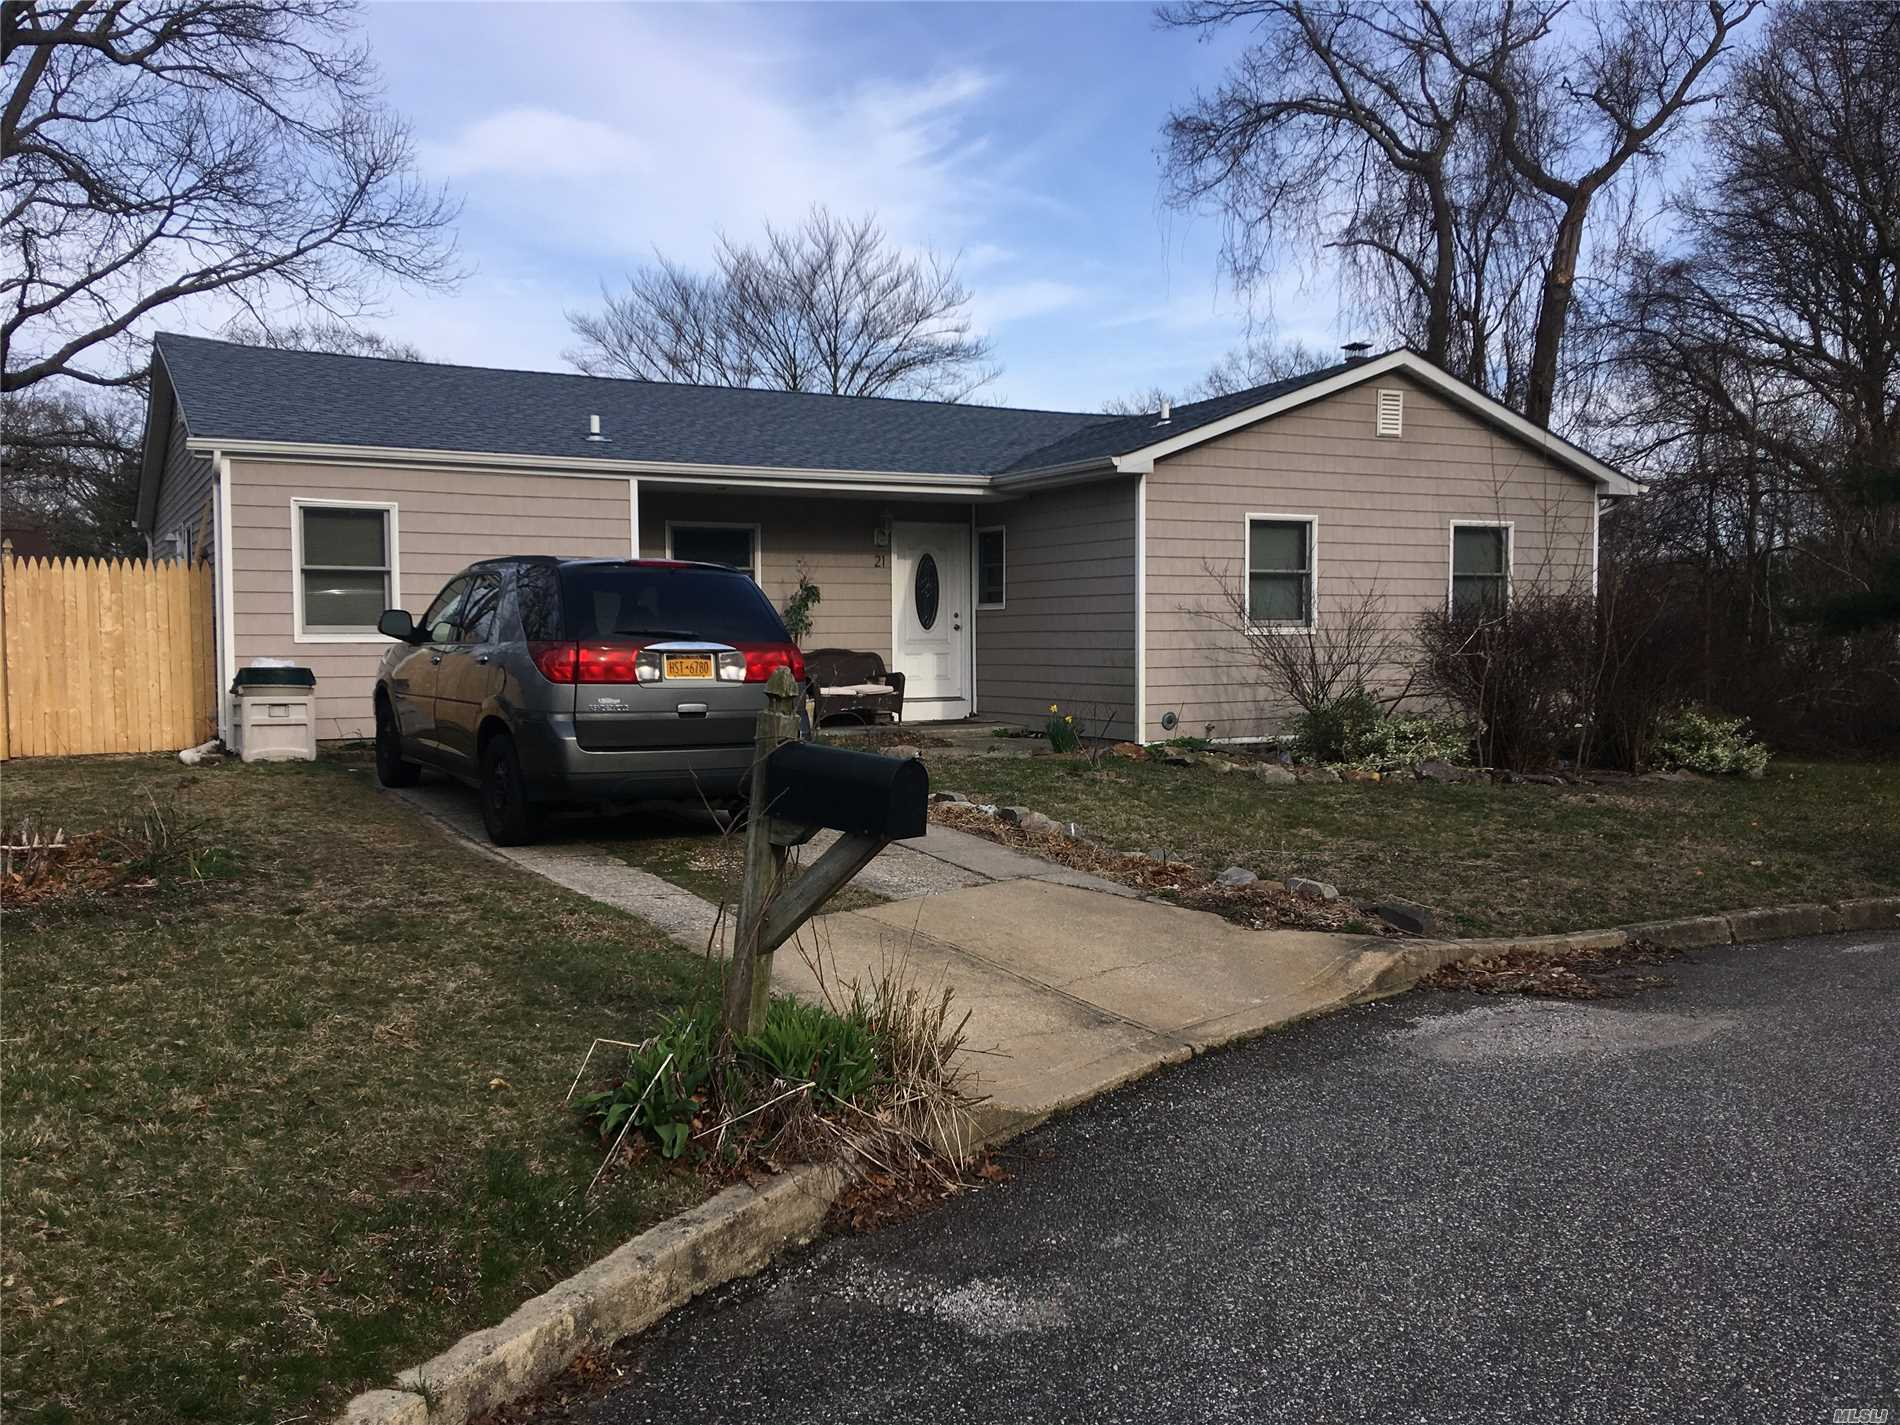 THIS IS A 3 BEDROOM 2 BATH HOUSE THAT HAS NEW SIDING NEW ROOF NEW WINDOWS THIS WILL NOT LAST!!!!!